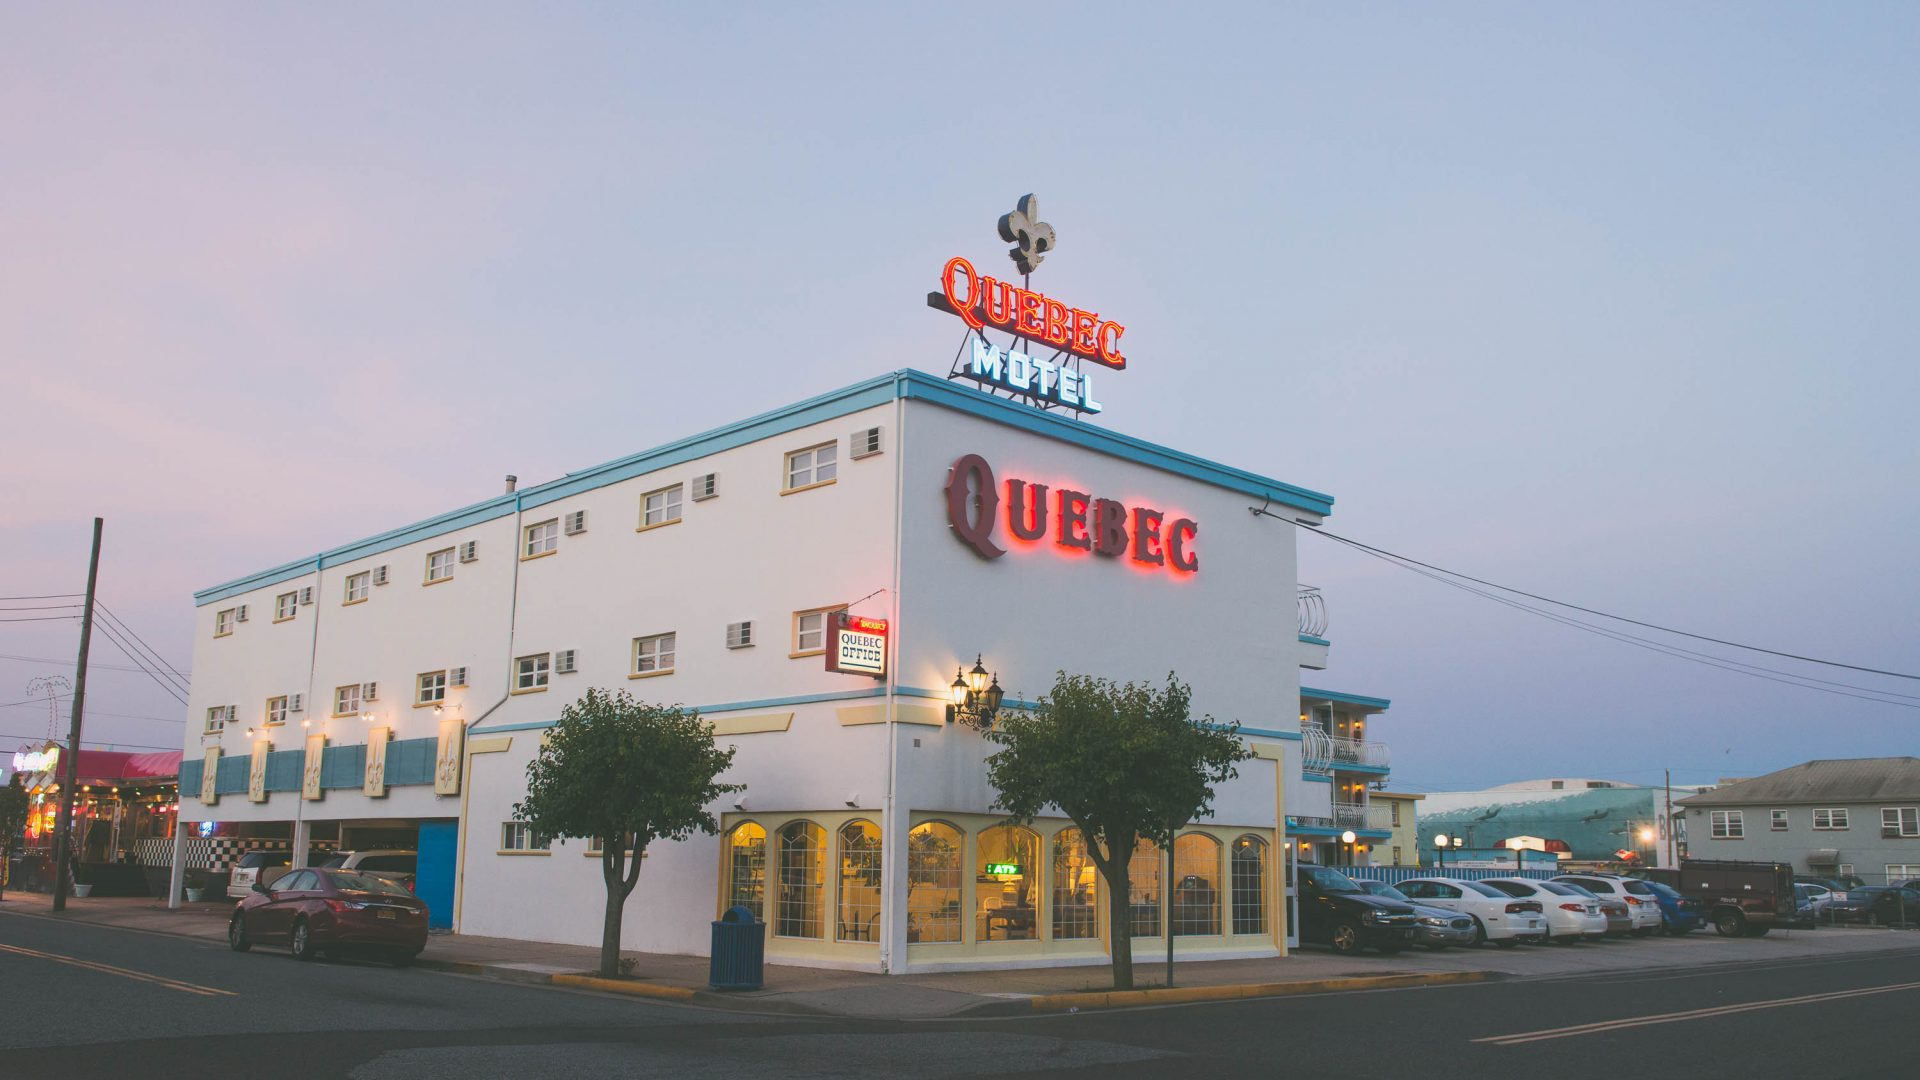 Motel Quebec catered to none other than the Quebecois who would come in large numbers to visit Wildwood in the summer months.